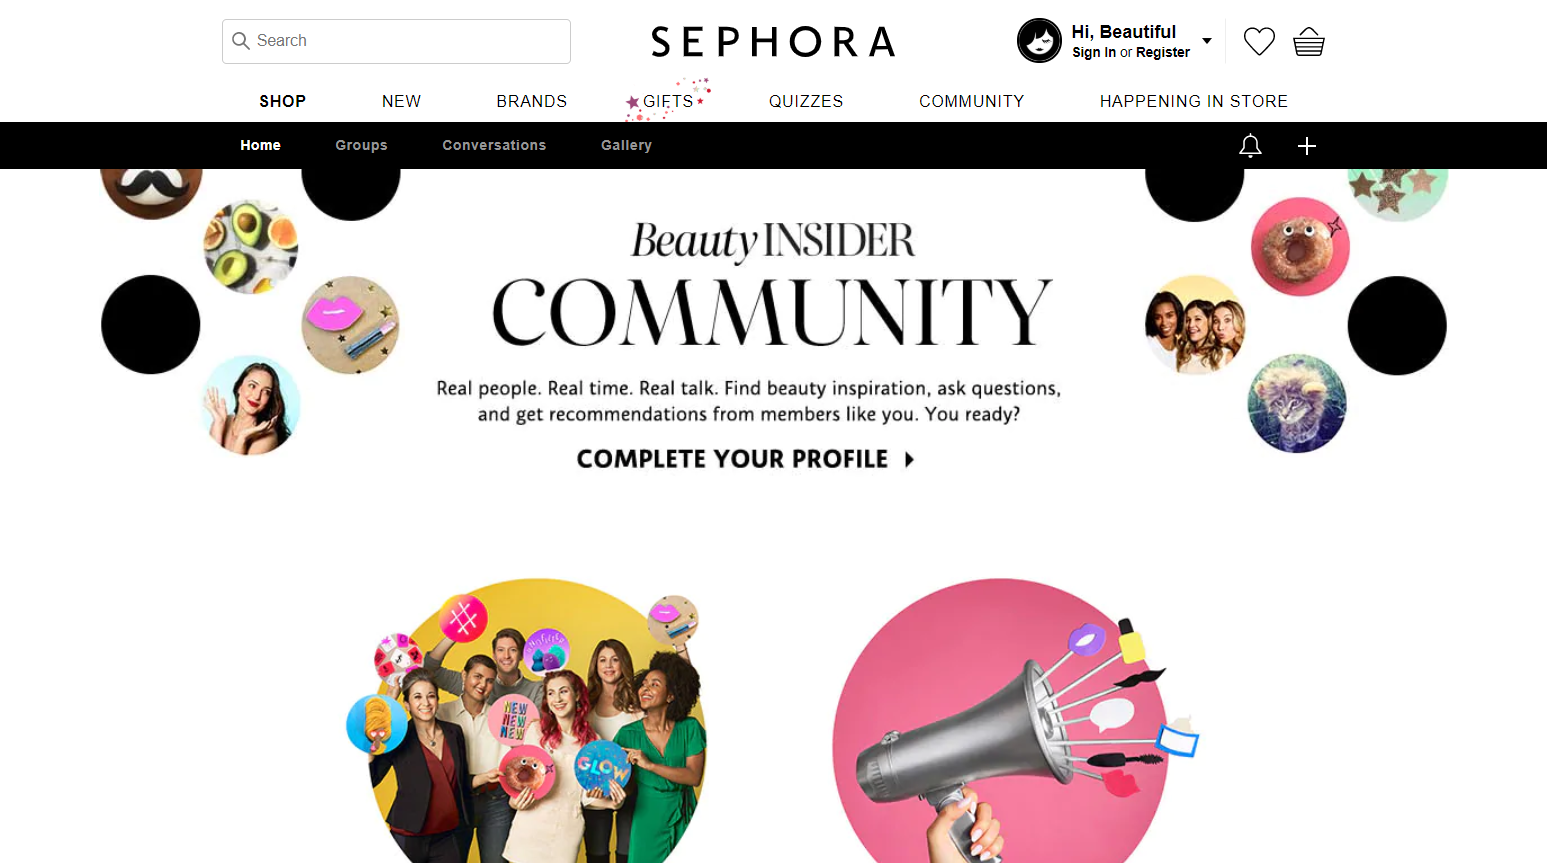 Example of ecommerce marketing strategy, online community